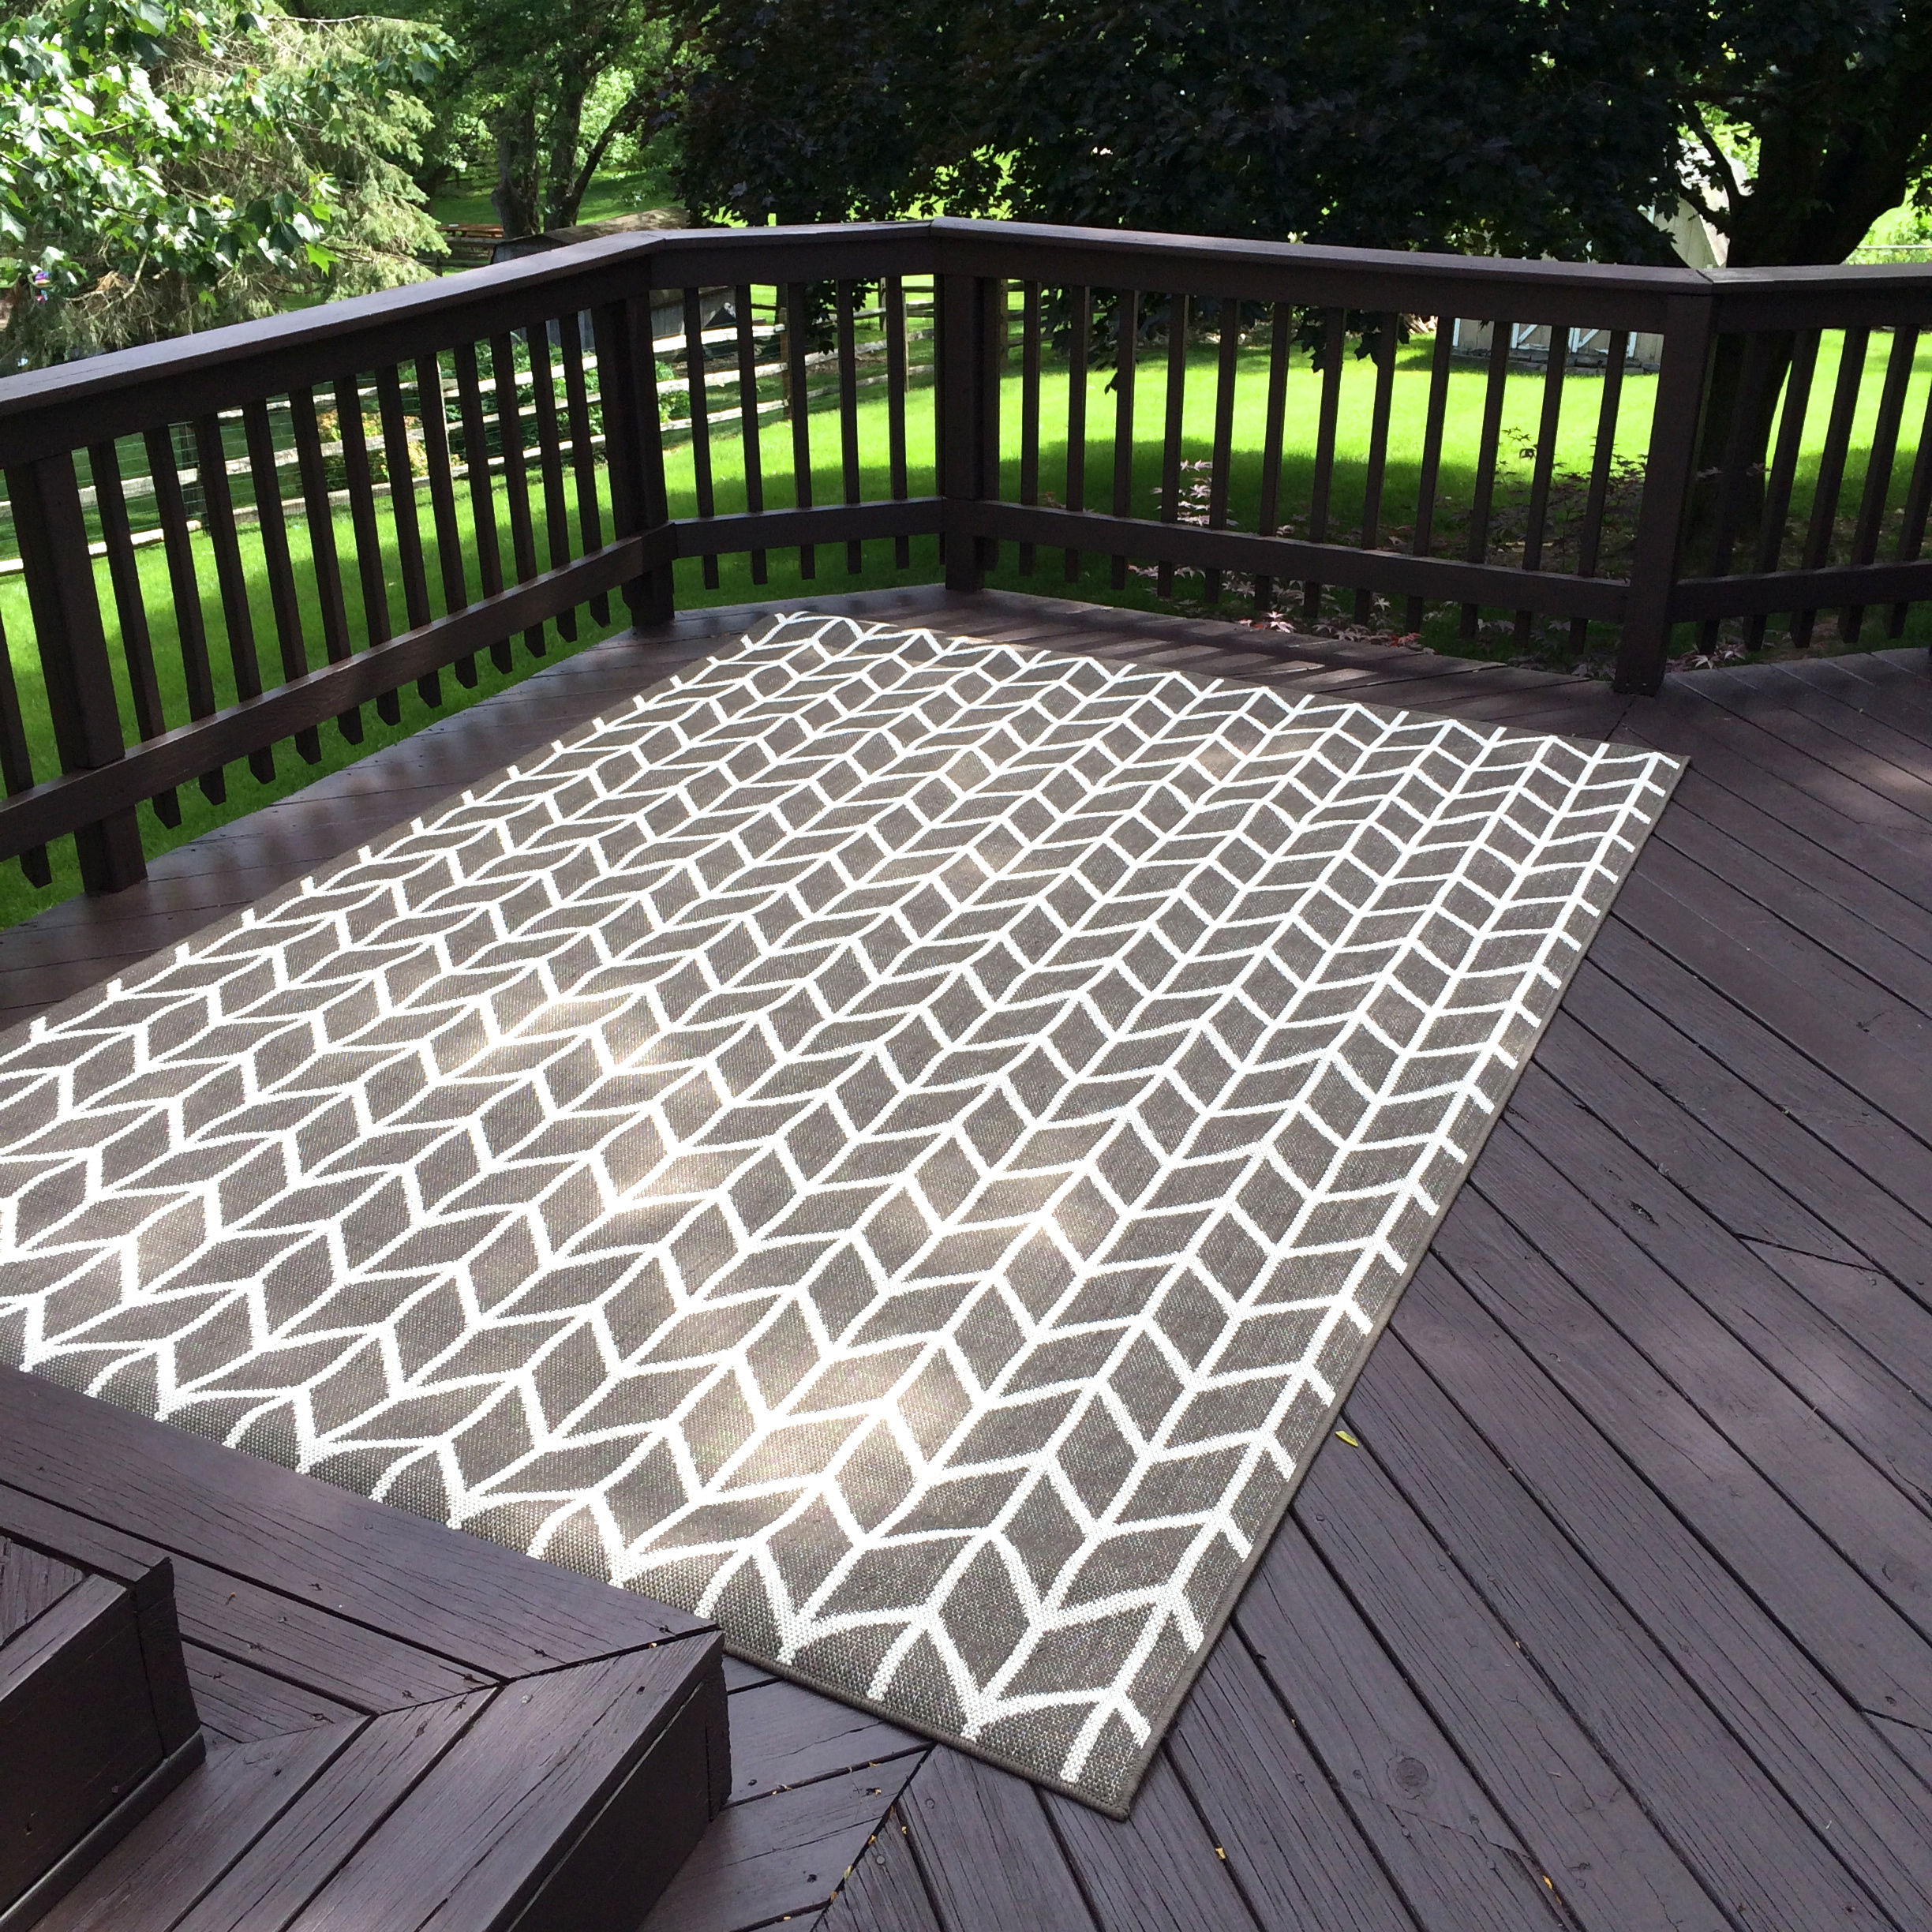 Deck Stain 101 & The Perfect Outdoor Couch Deck Diaries